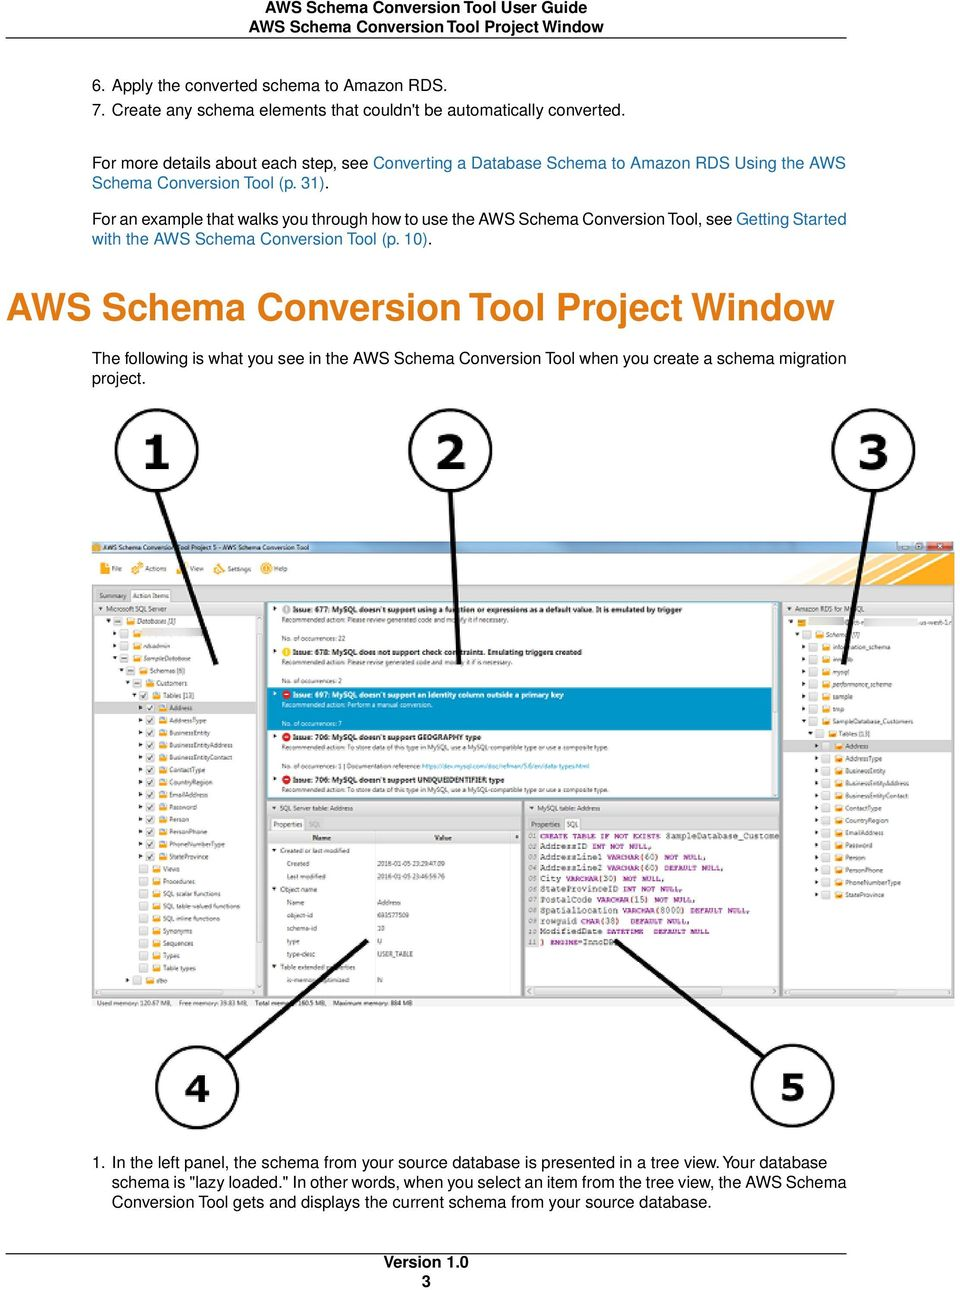 For an example that walks you through how to use the AWS Schema Conversion Tool, see Getting Started with the AWS Schema Conversion Tool (p. 10).